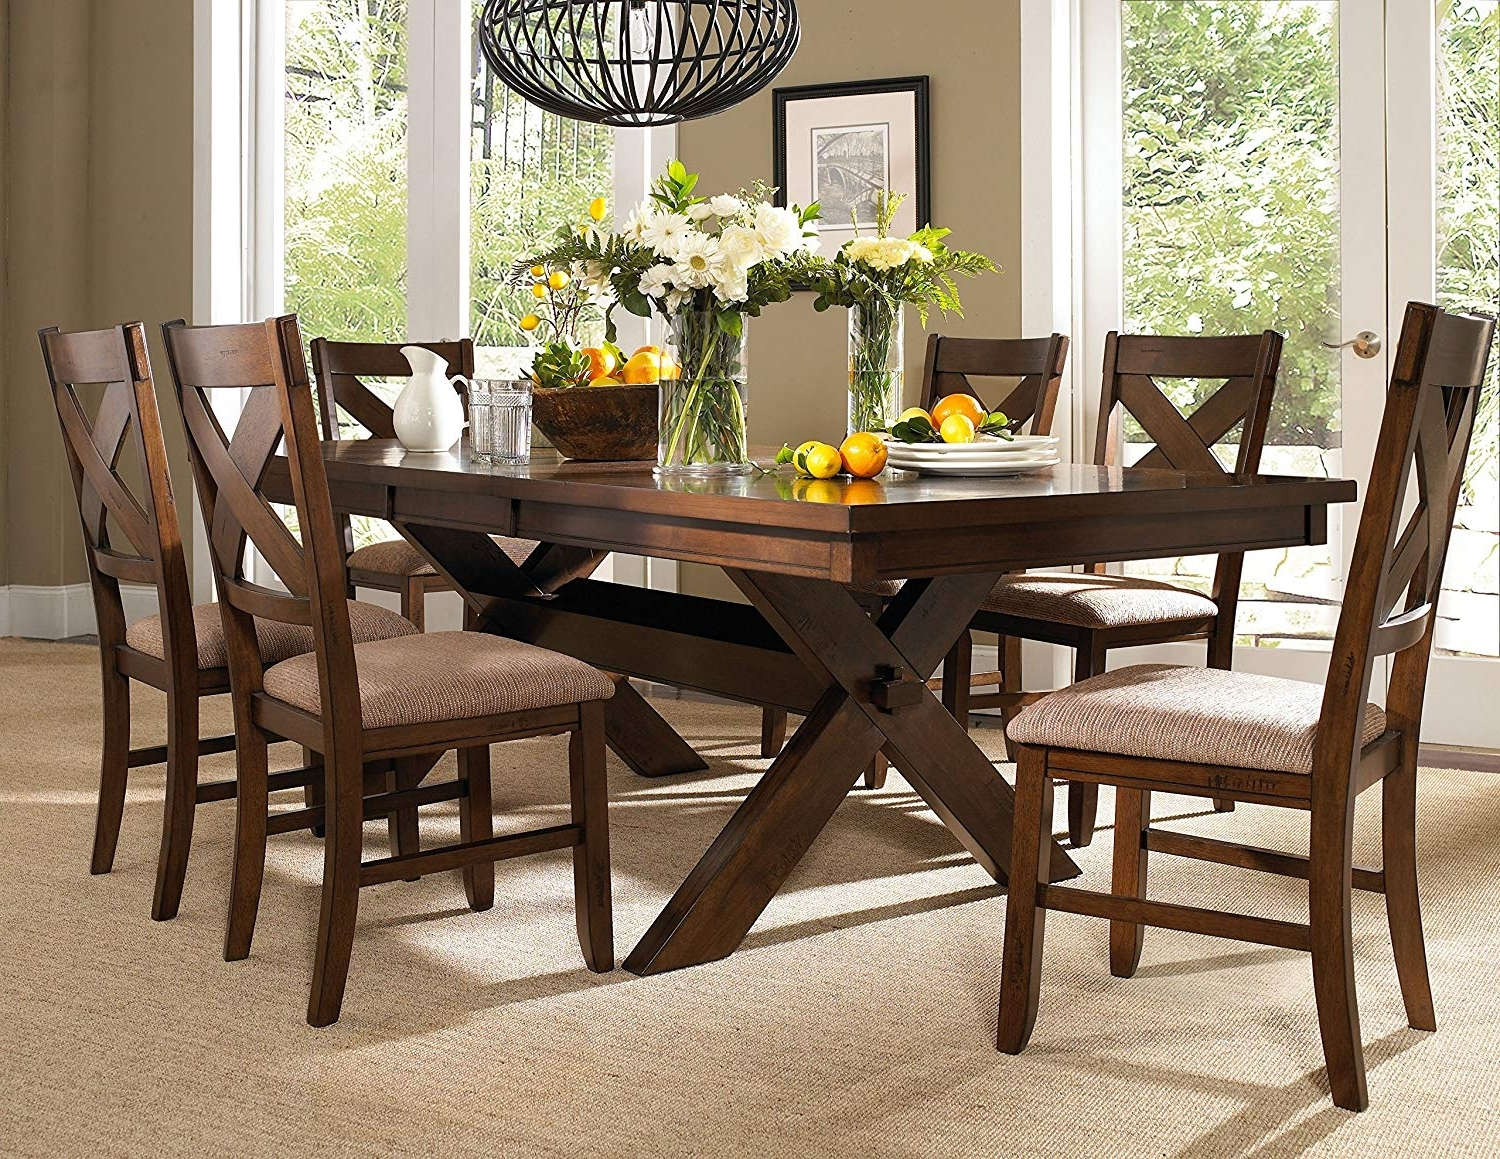 Amazon – Powell 713 417M2 7 Piece Wooden Kraven Dining Set With Regard To Most Popular Dining Table Sets With 6 Chairs (View 2 of 25)